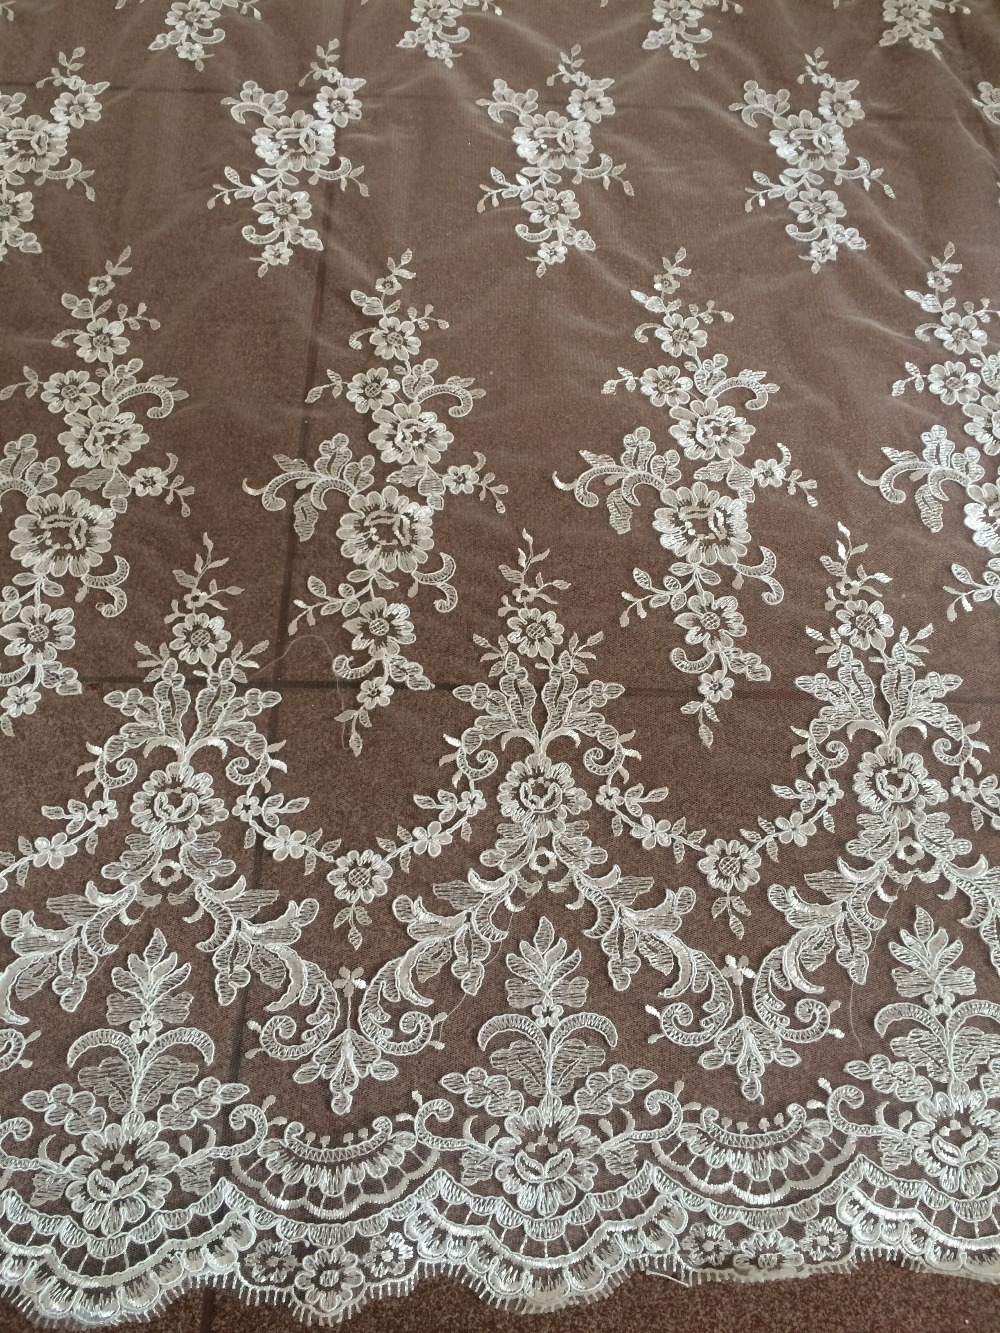 Free shipping LJY 32511 african lace fabric french guipure lace fabric new arrival tulle lace fabric